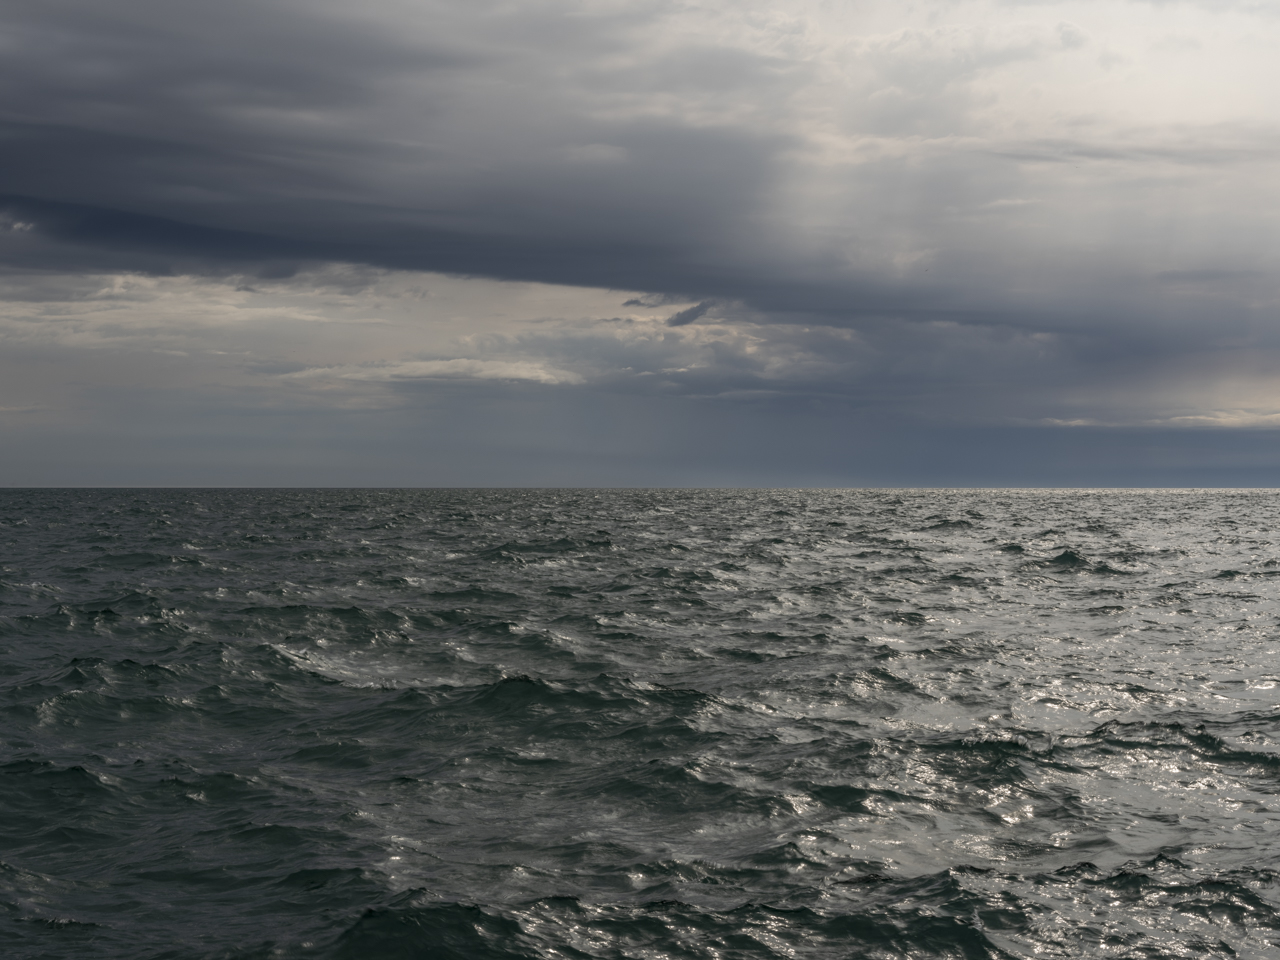 a stormy day on Lake Michigan where the clouds are breaking and forming in the sky while pouring rain out over the horizon, the lake a dark green blue and roiling below the sky